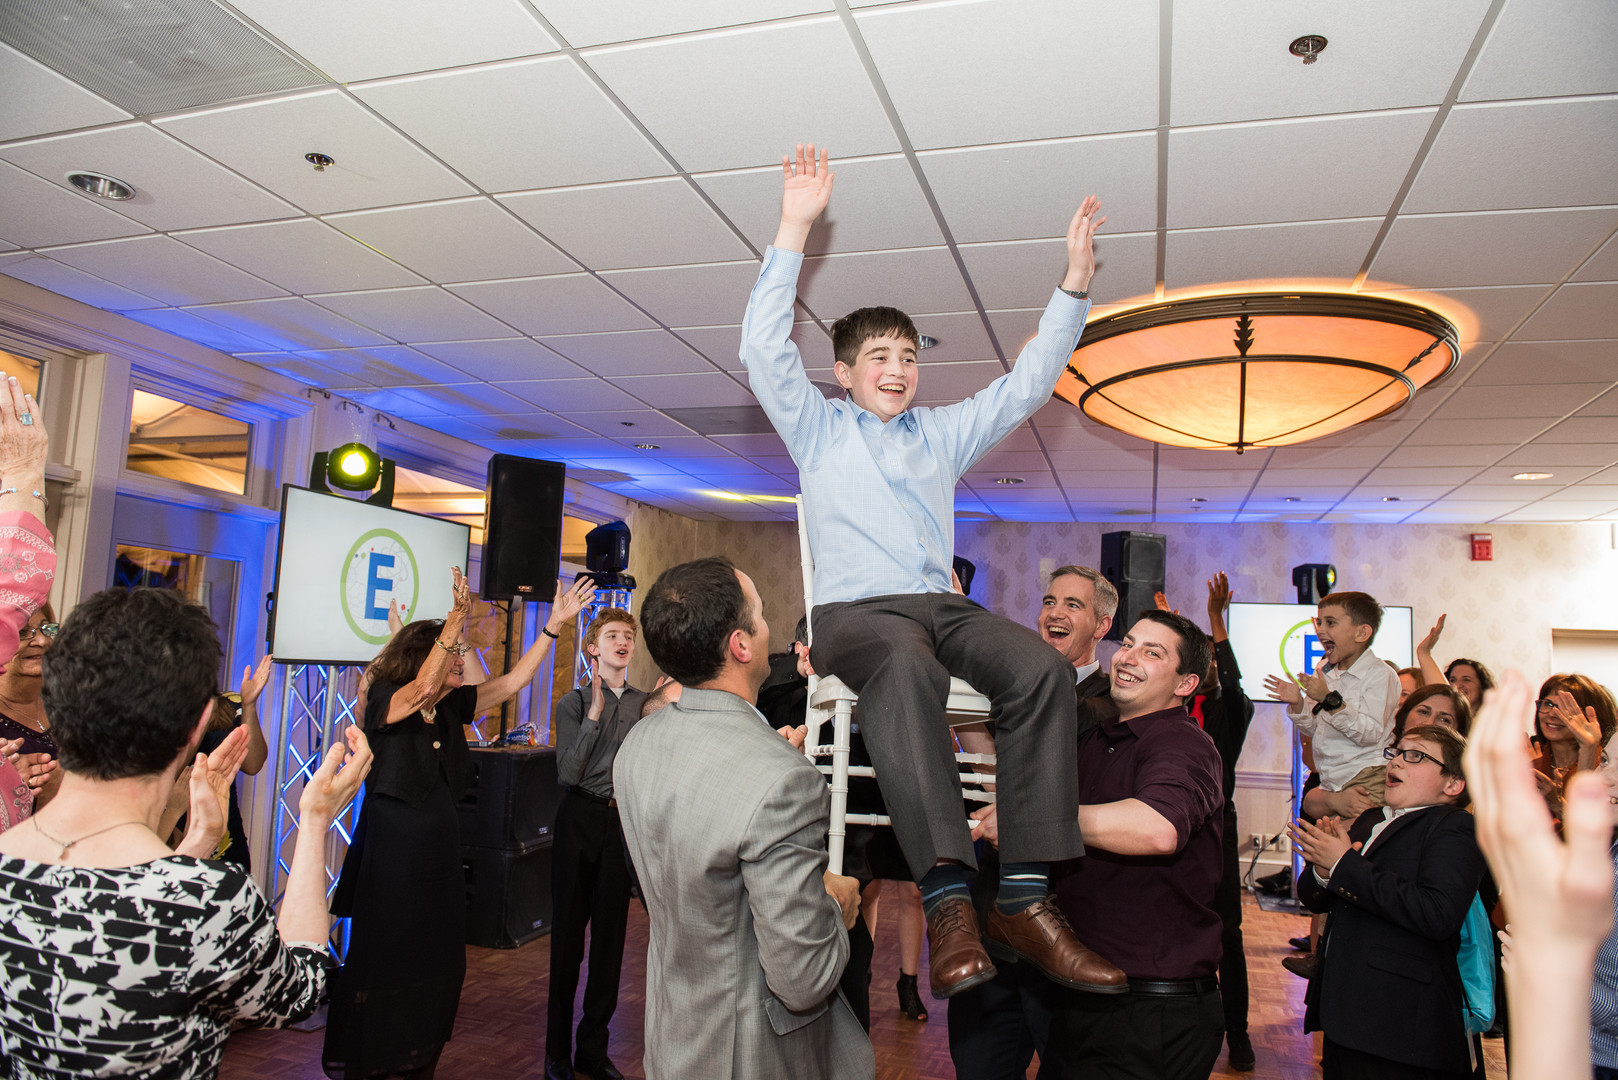 mitzvah party-494.jpg